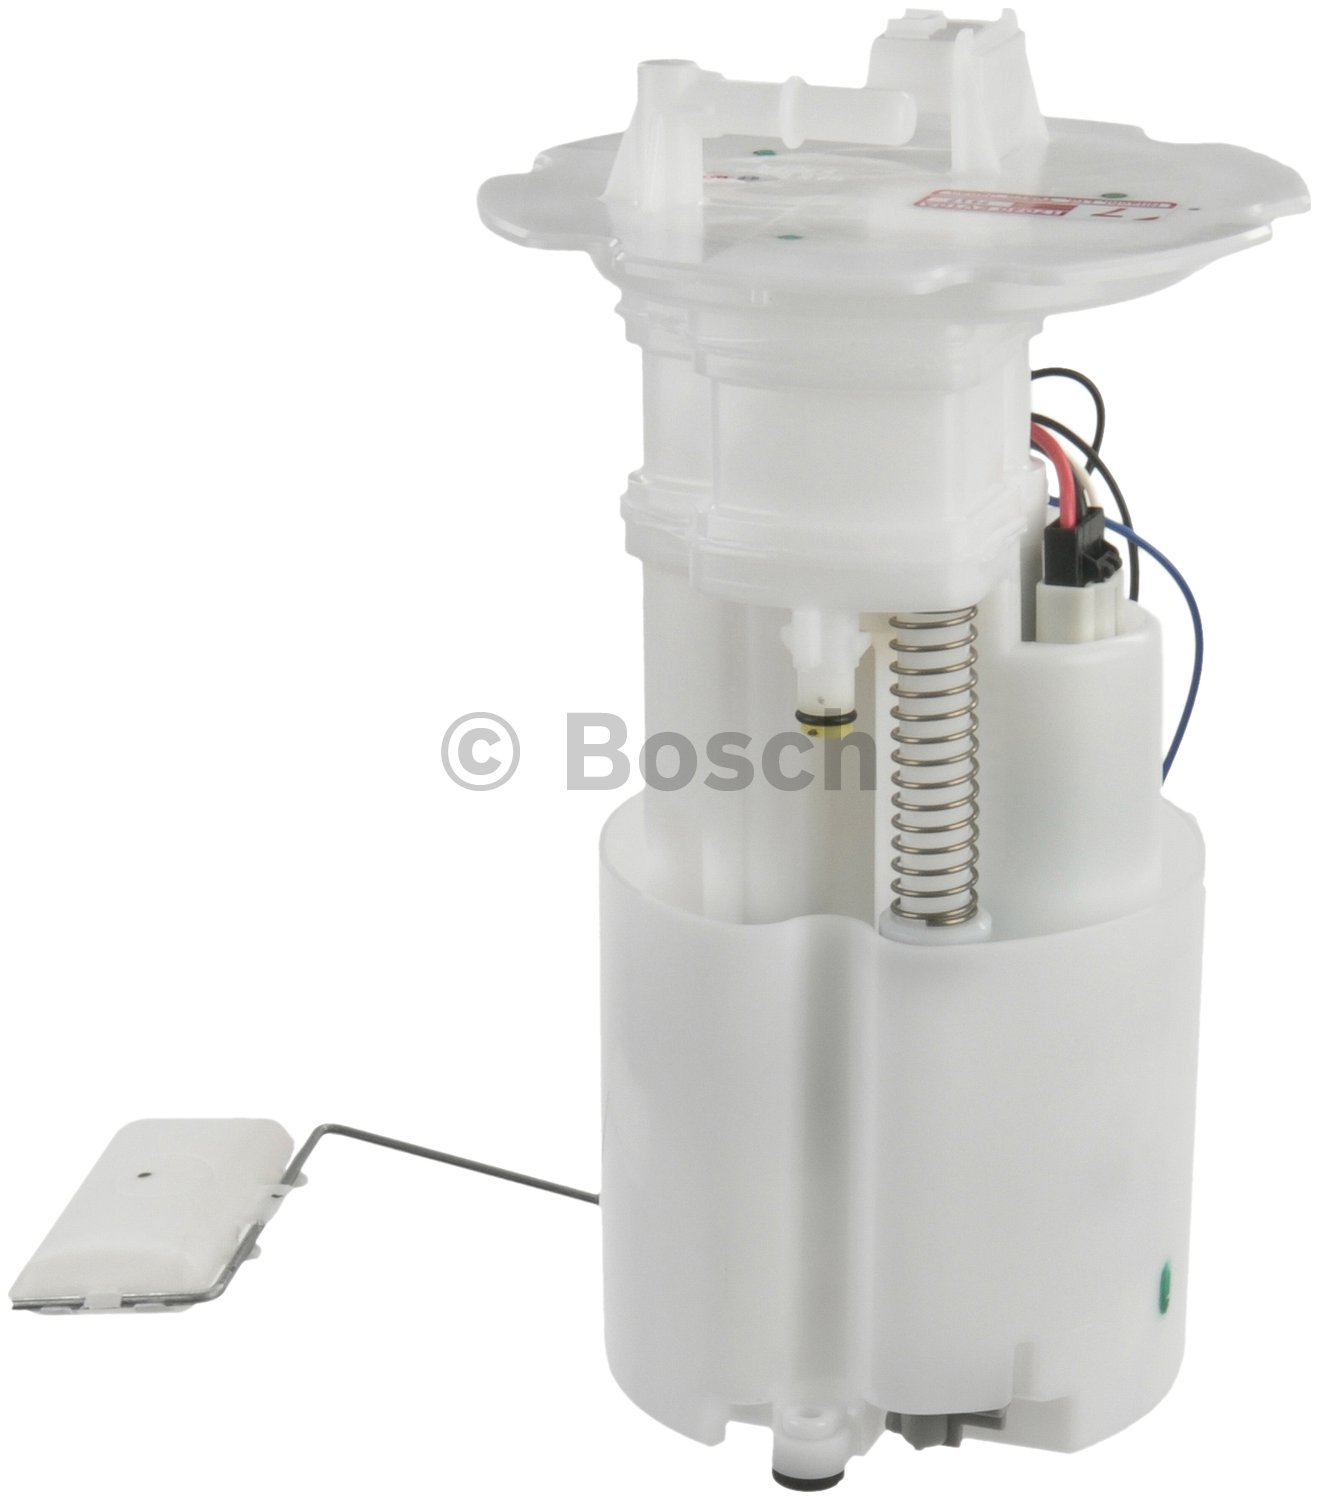 hight resolution of 2006 infiniti g35 fuel pump module assembly bs 69868